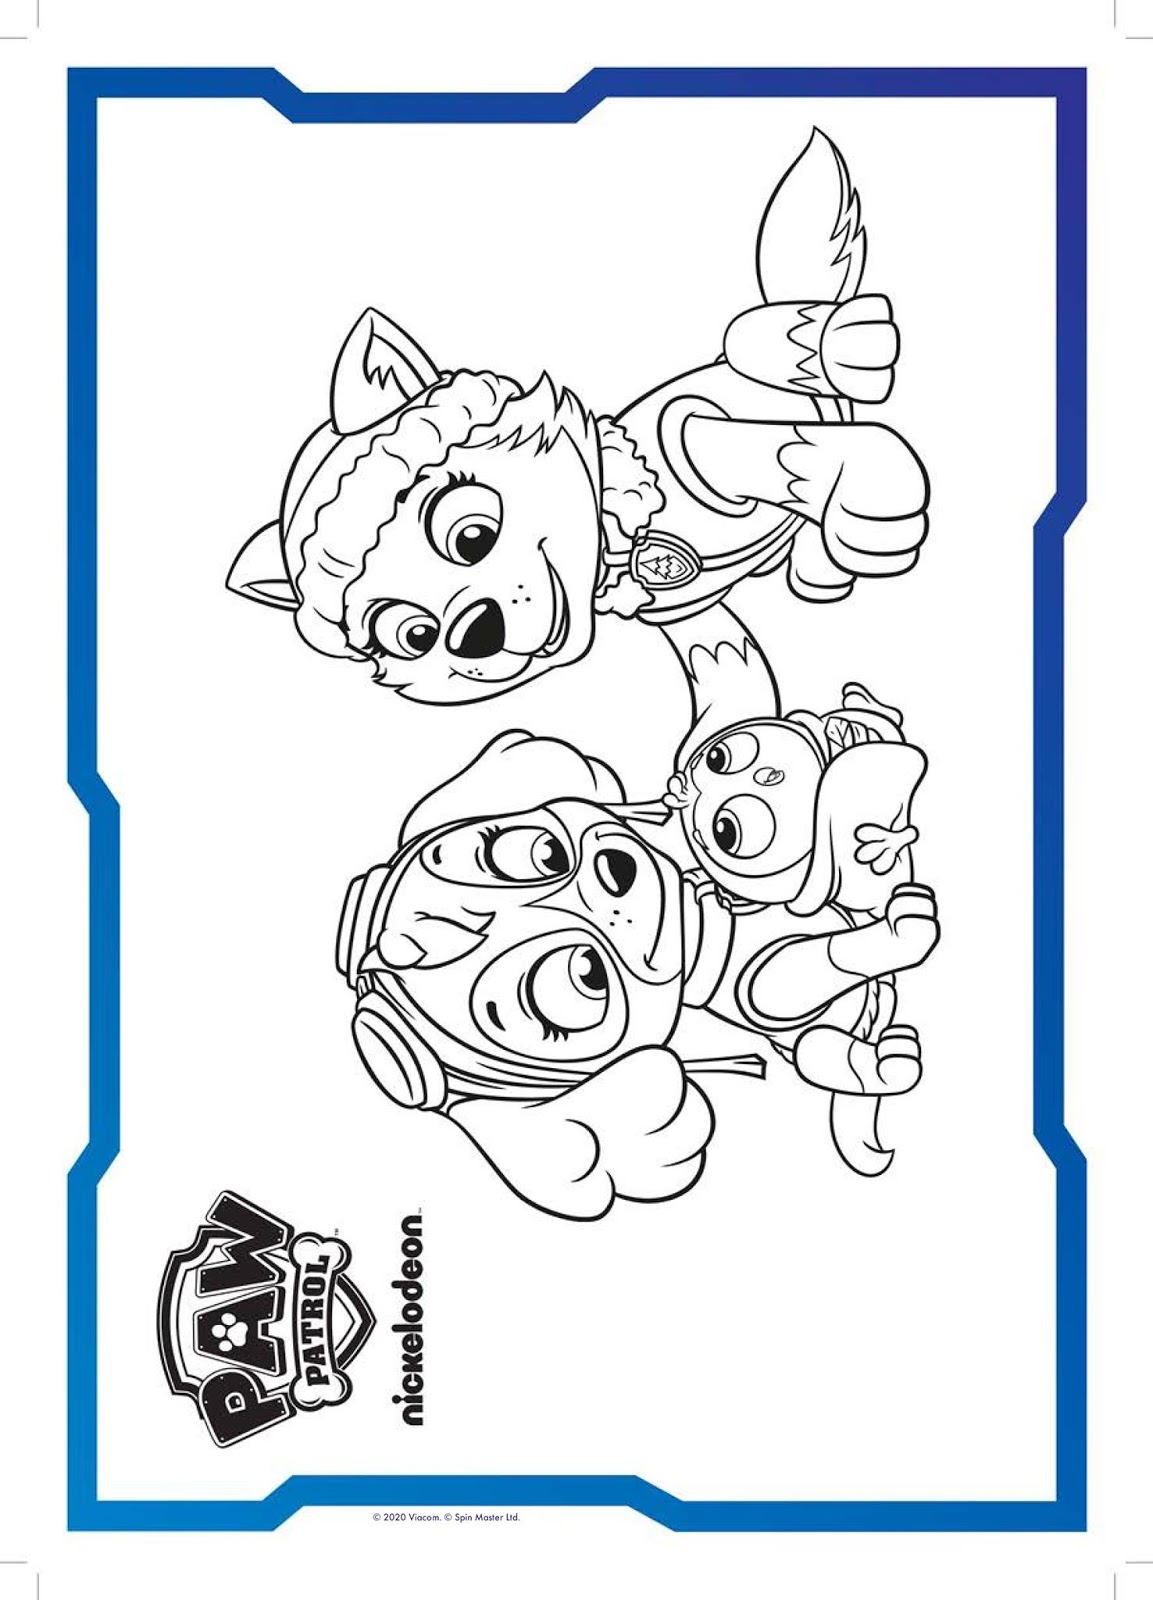 free nick jr coloring pages – eargear.me | 1600x1153